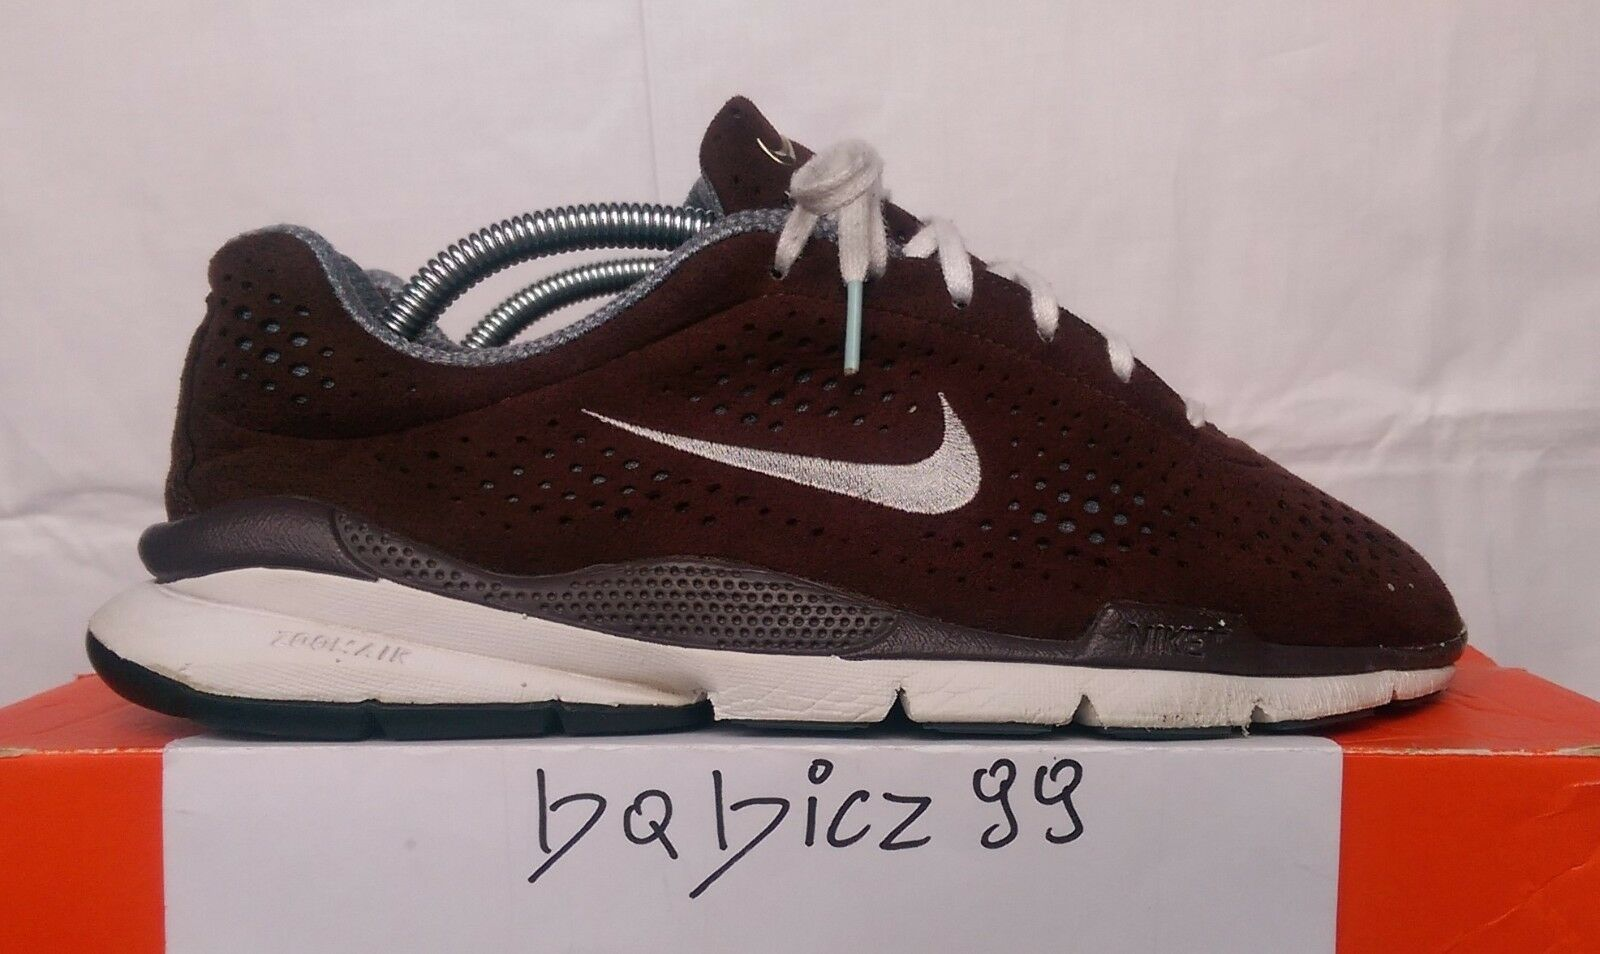 WMNS NIKE AIR ZOOM moiré + Chocolate 2006 9us/40, 5eur RARE